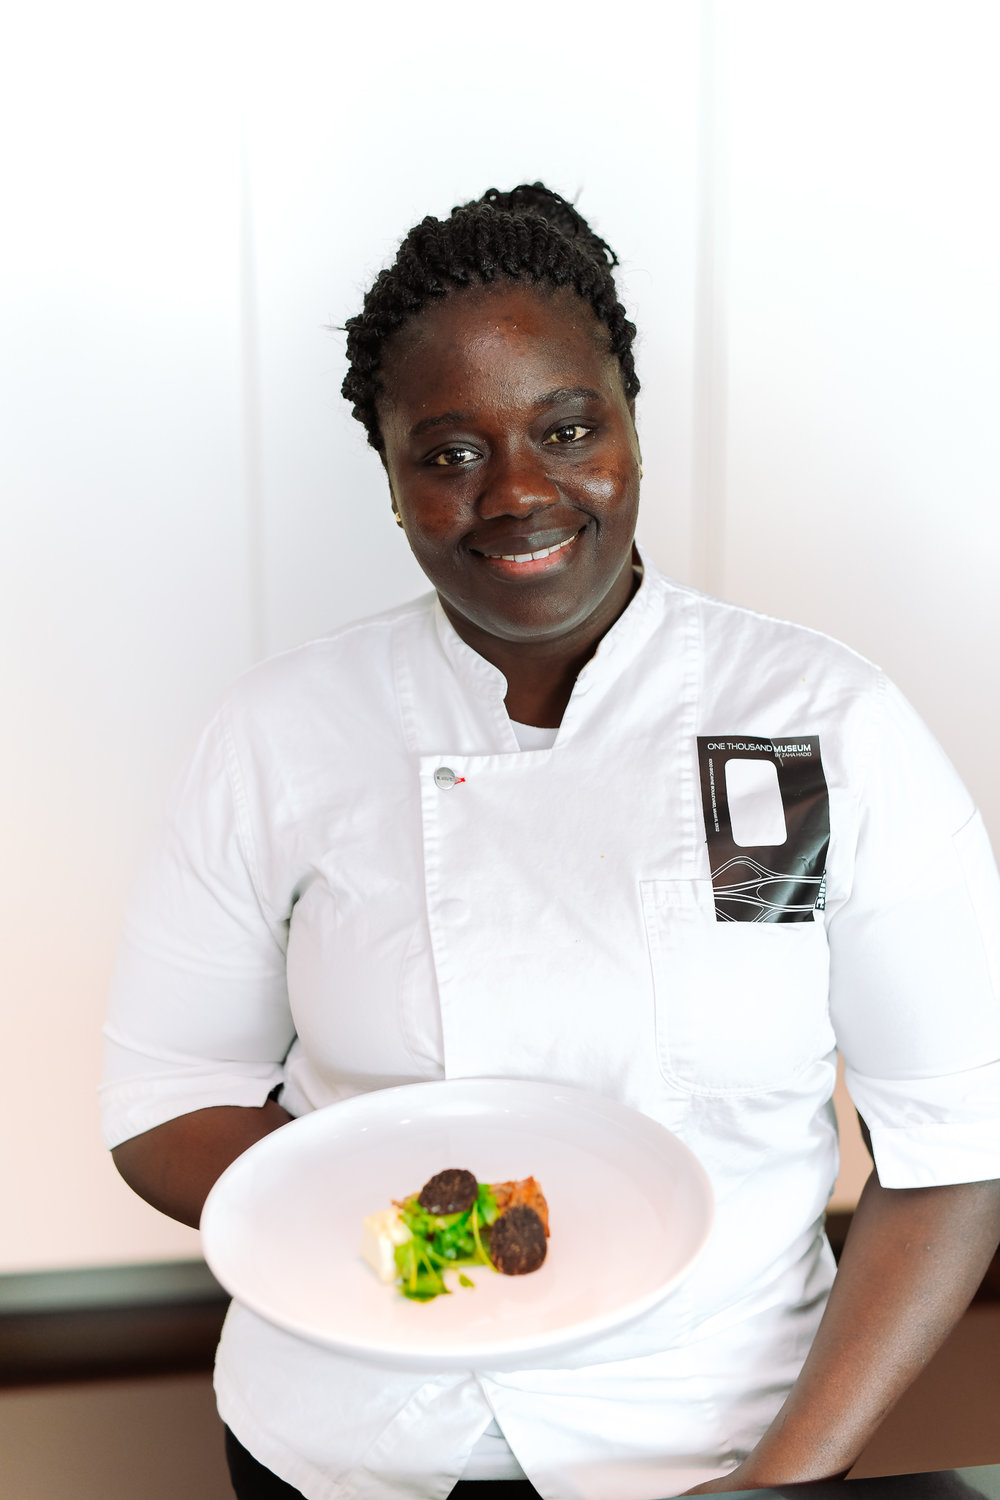 Chef Mame Sow